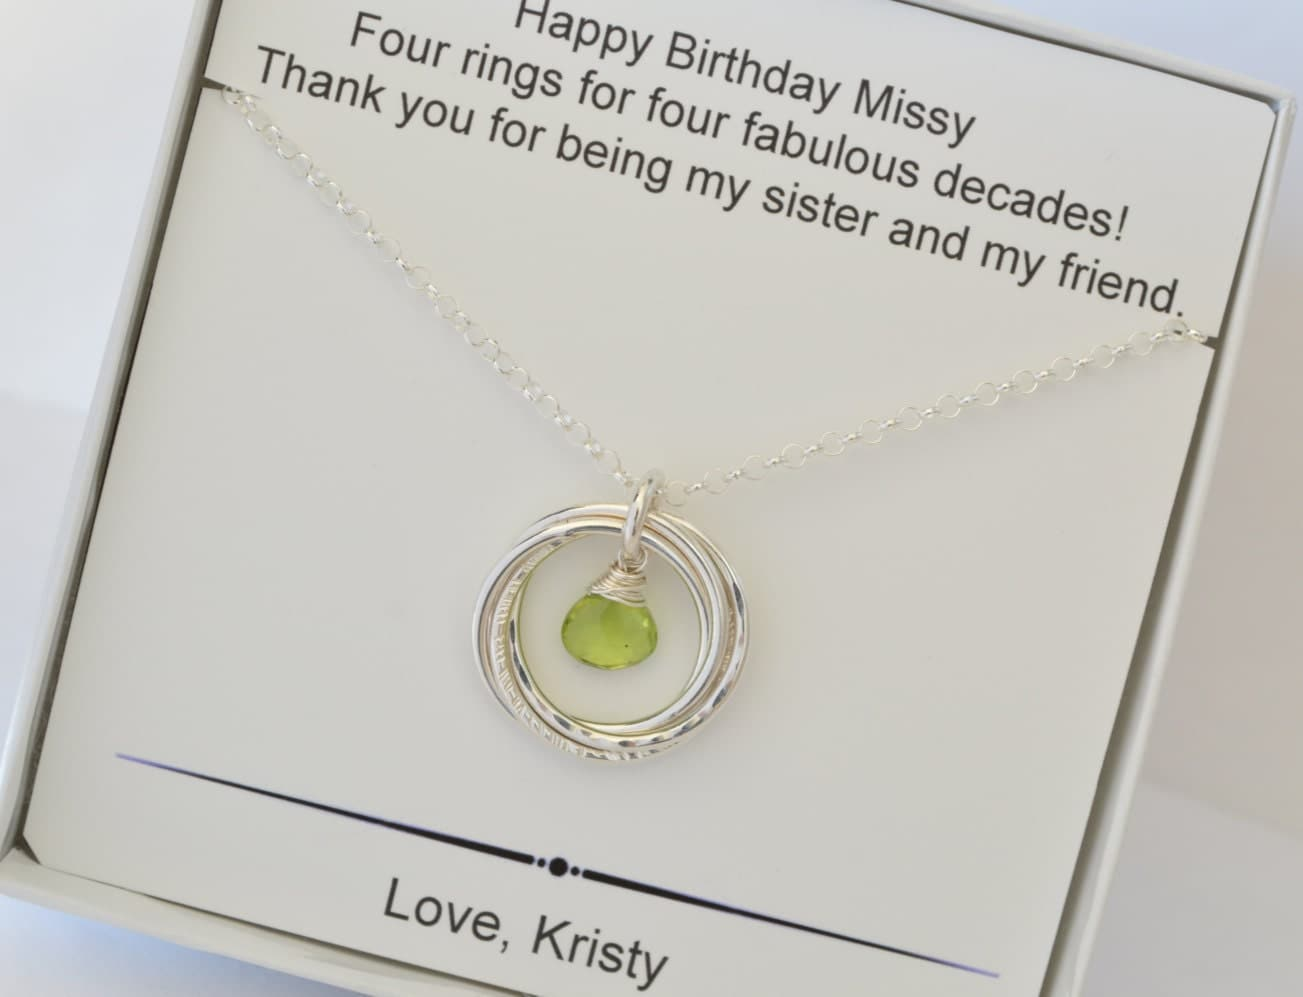 40th Wedding Anniversary Gifts For Friends: 40th Birthday Gift For Sister, 4th Anniversary Gift